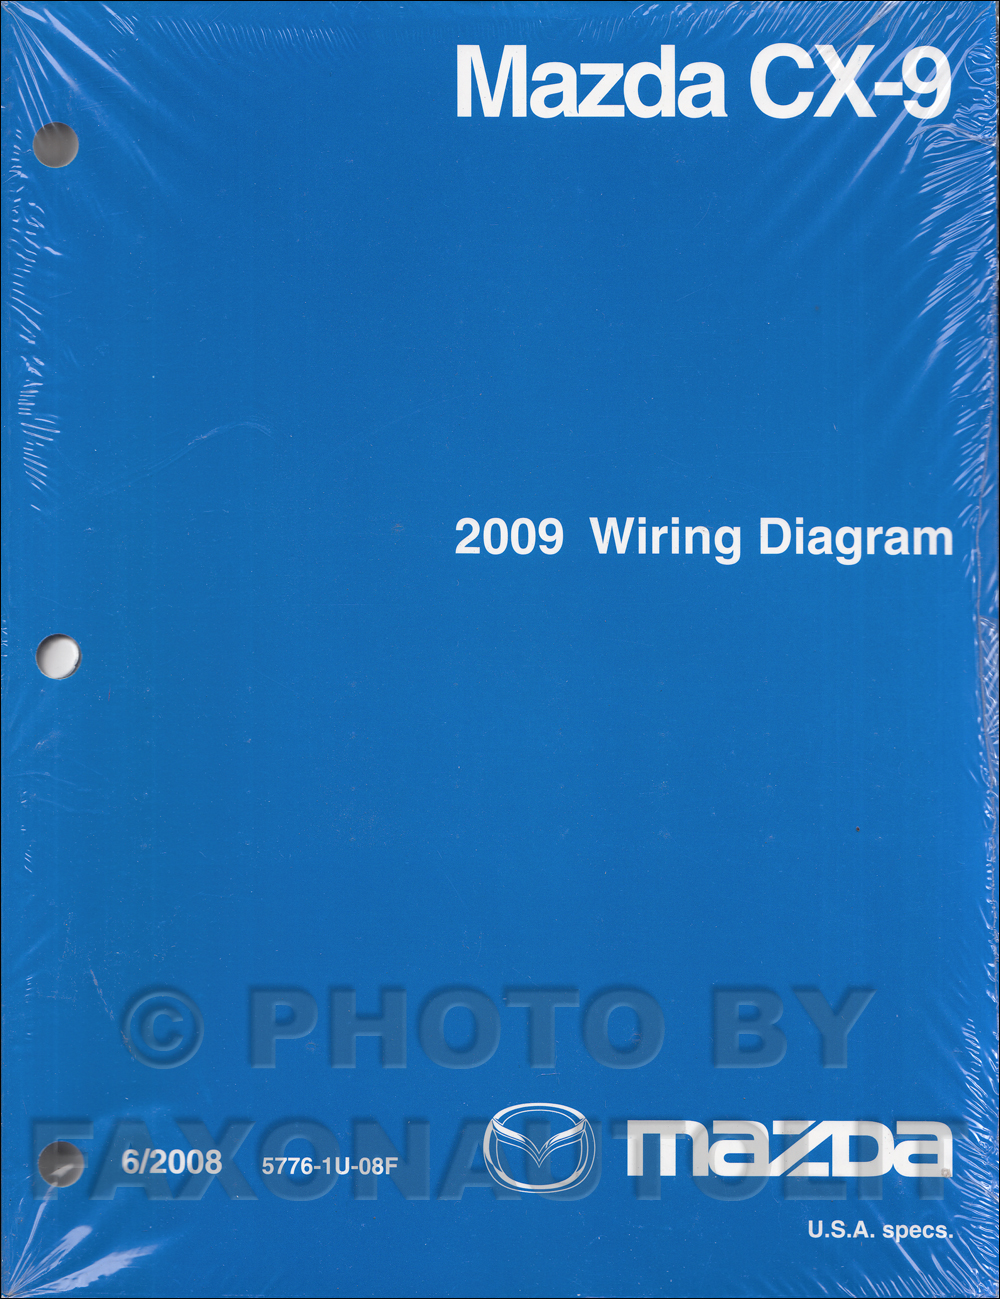 2009 Mazda CX-9 Wiring Diagram Manual Original